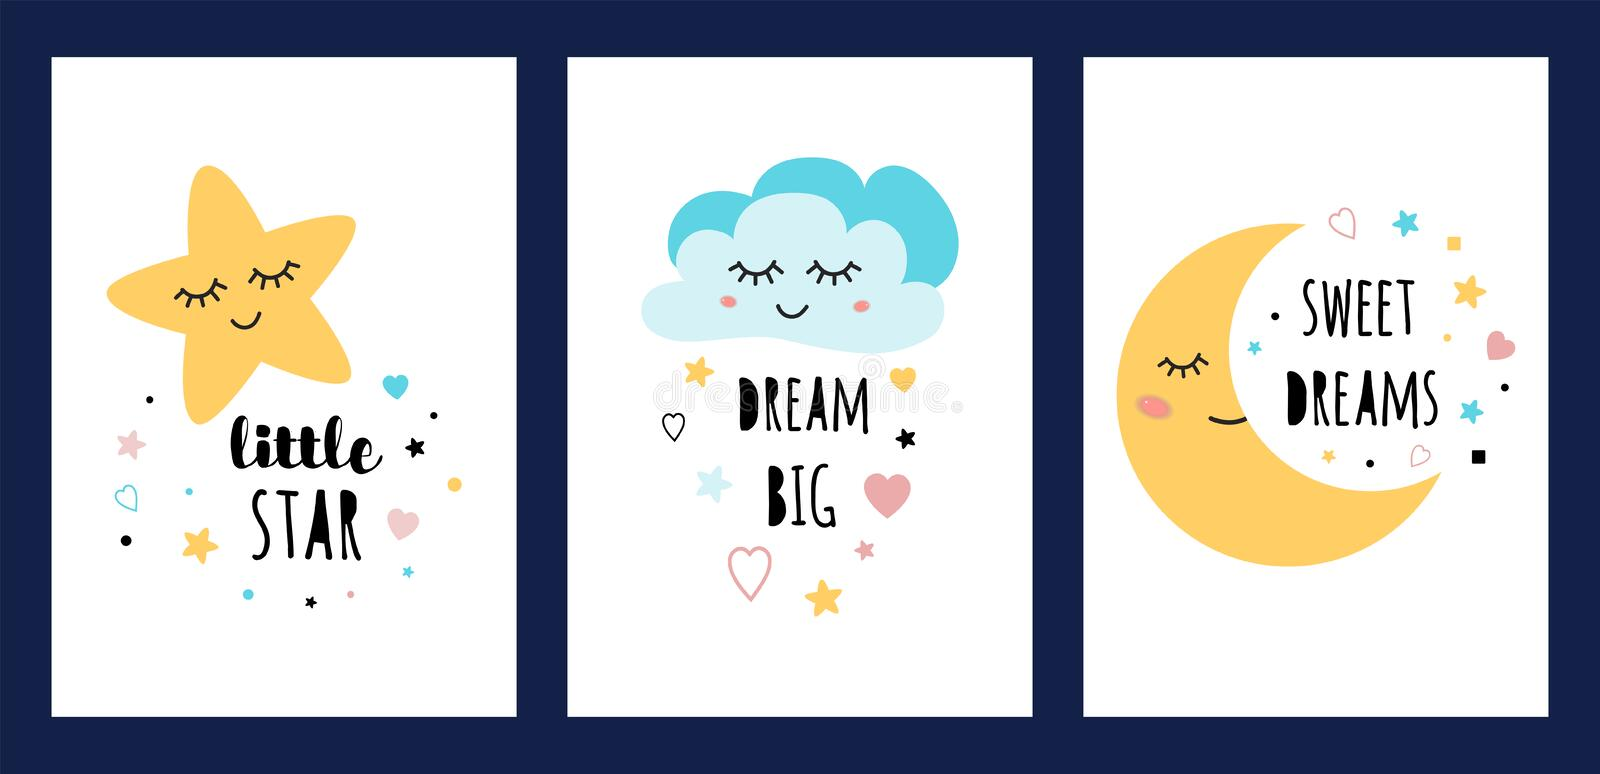 Star cloud moon sleep card set Sleeping character collection Funny posters text Dream big Sweet deams Little star vector vector illustration